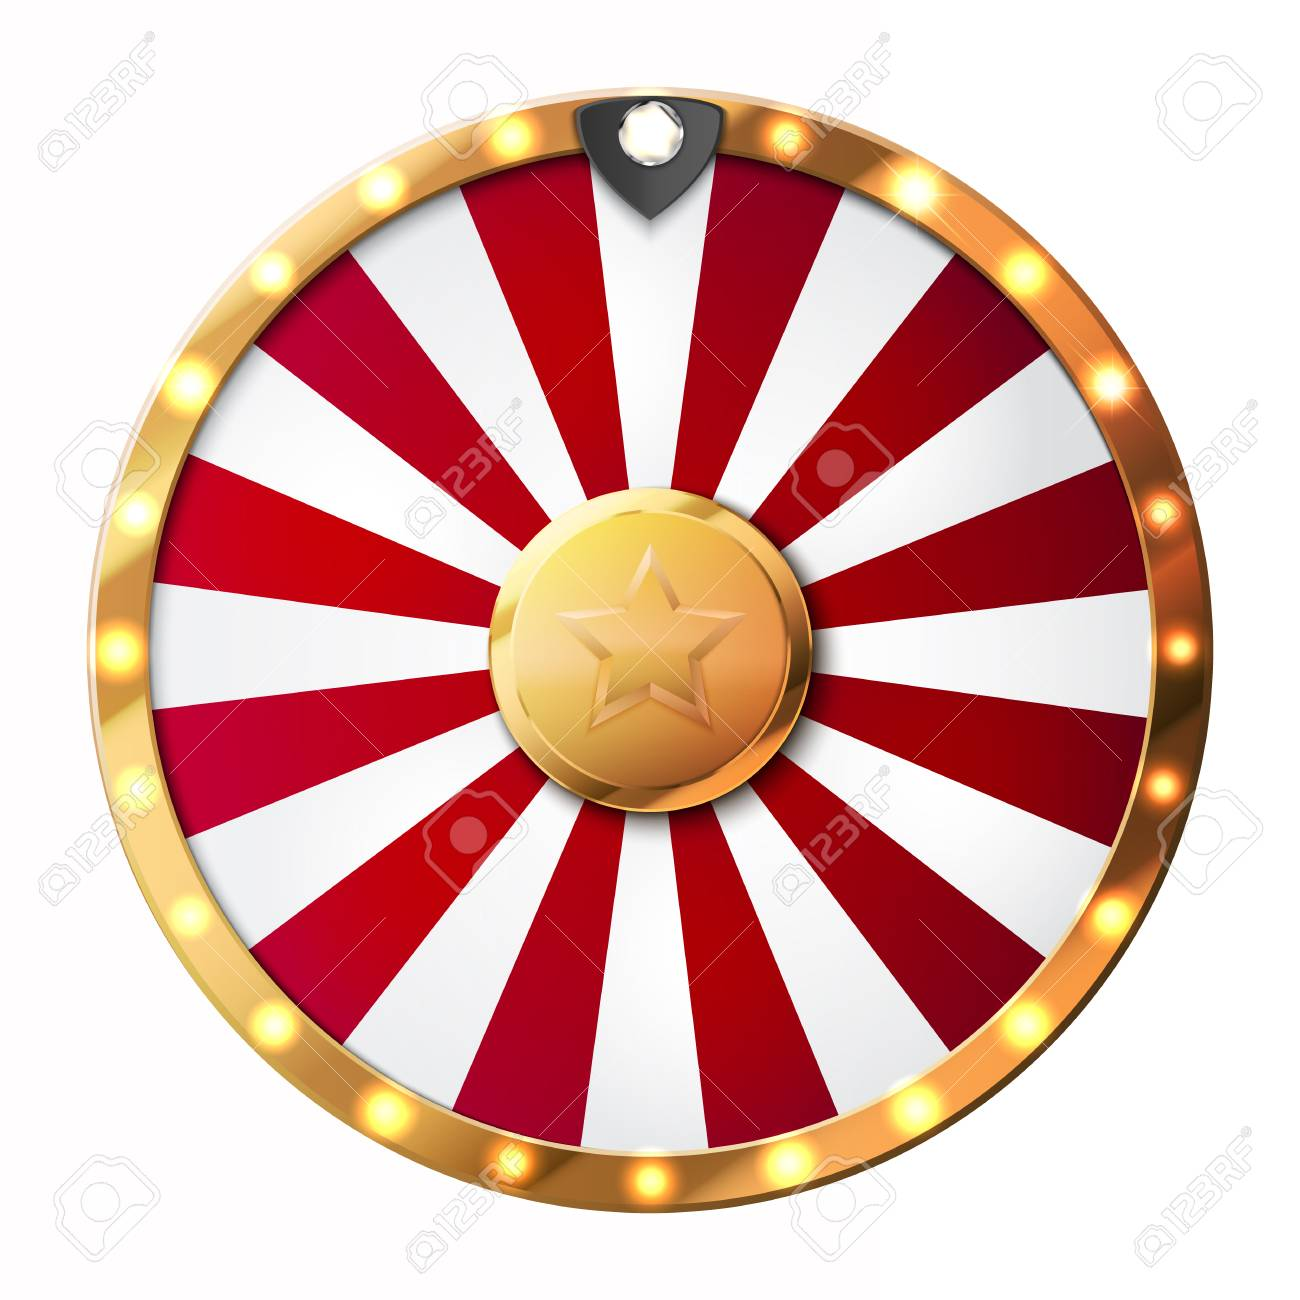 Colorful wheel of luck or fortune infographic. Vector - 88362651